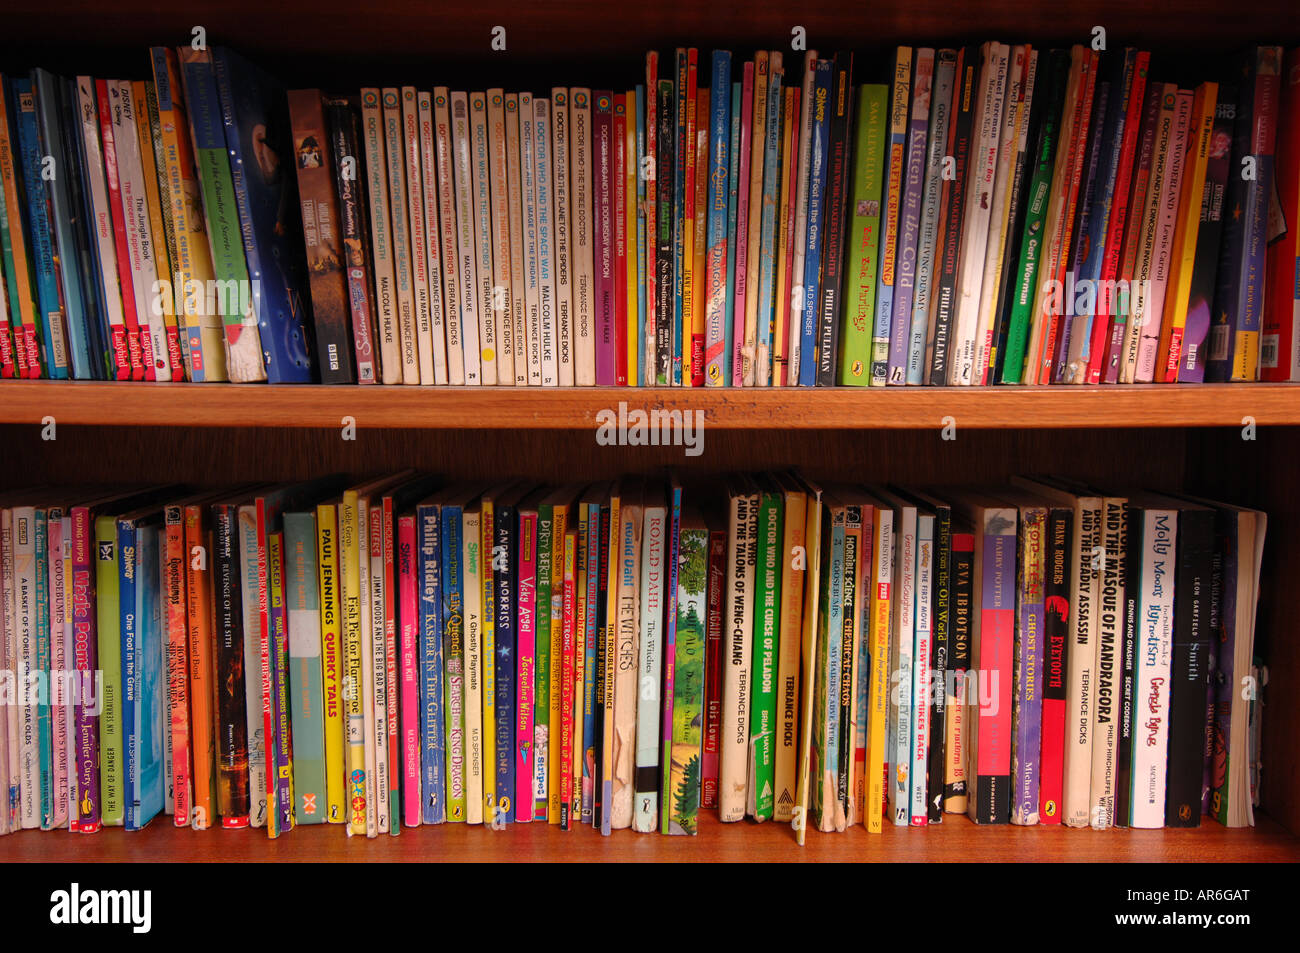 Bookshelf  in school library - Stock Image